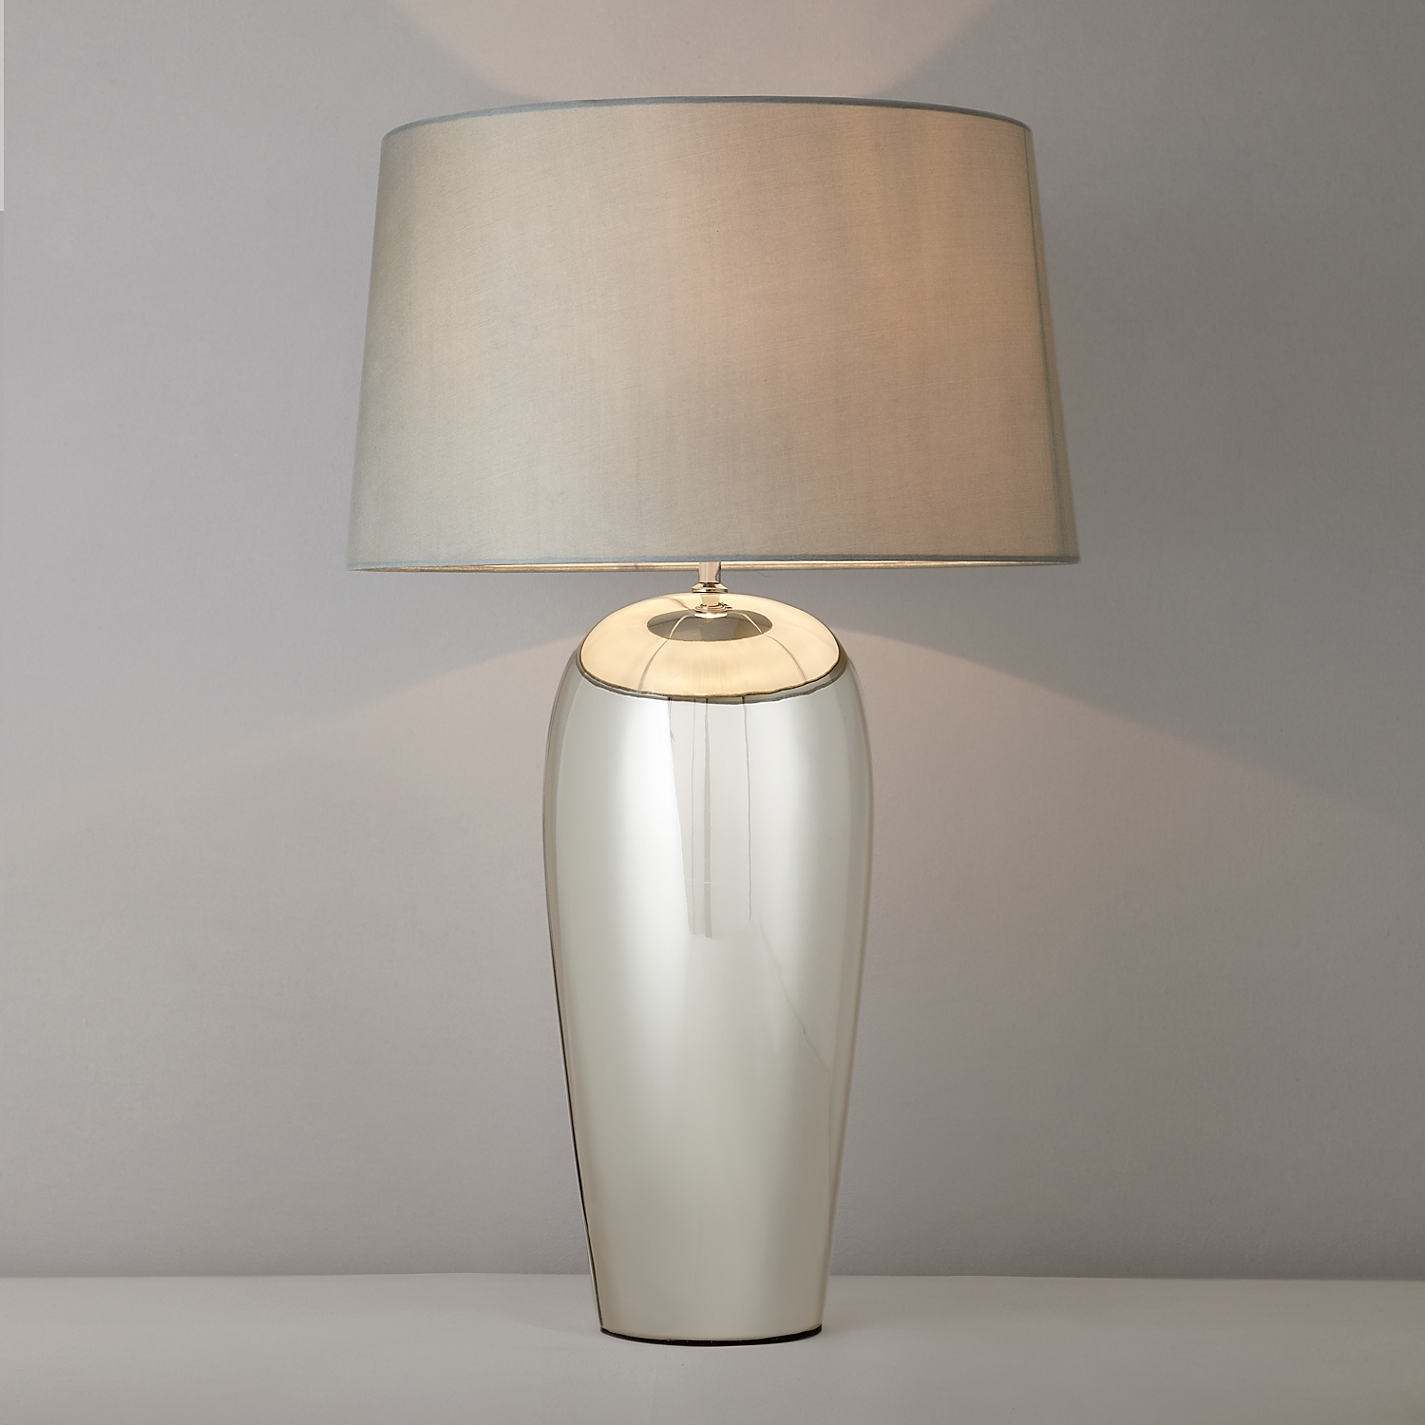 Inspiration about Gallery John Lewis Table Lamps – Badotcom Pertaining To John Lewis Table Lamps For Living Room (#6 of 15)